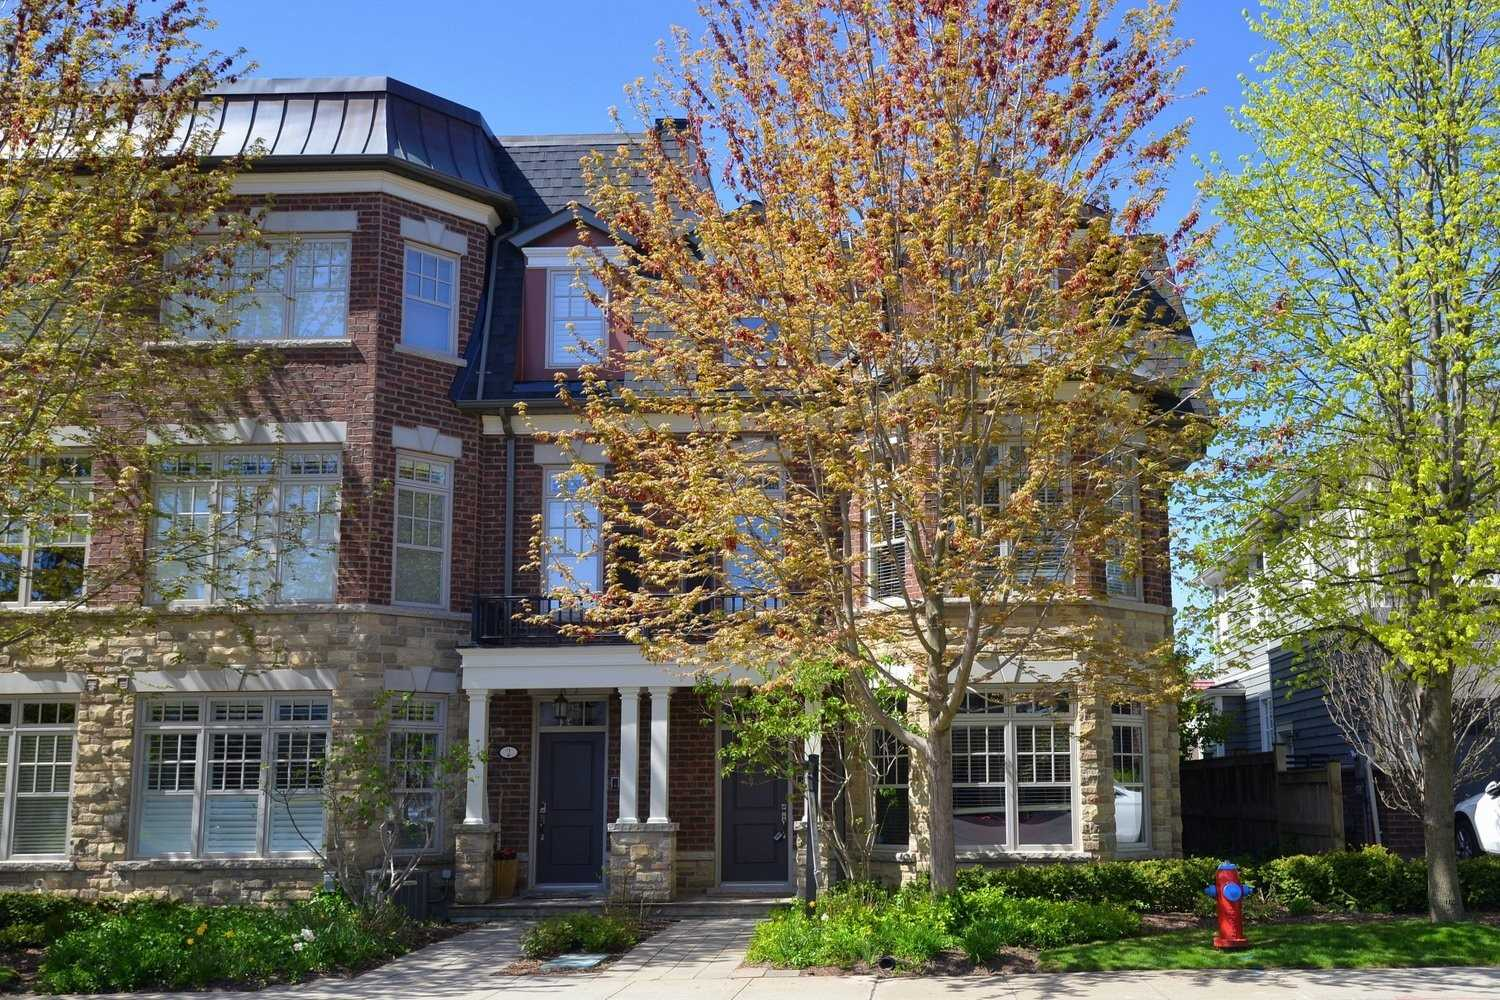 2061 Maria St, Burlington, L7R0B5, 2 Bedrooms Bedrooms, ,5 BathroomsBathrooms,Condo Townhouse,For Sale,Maria,W4768336